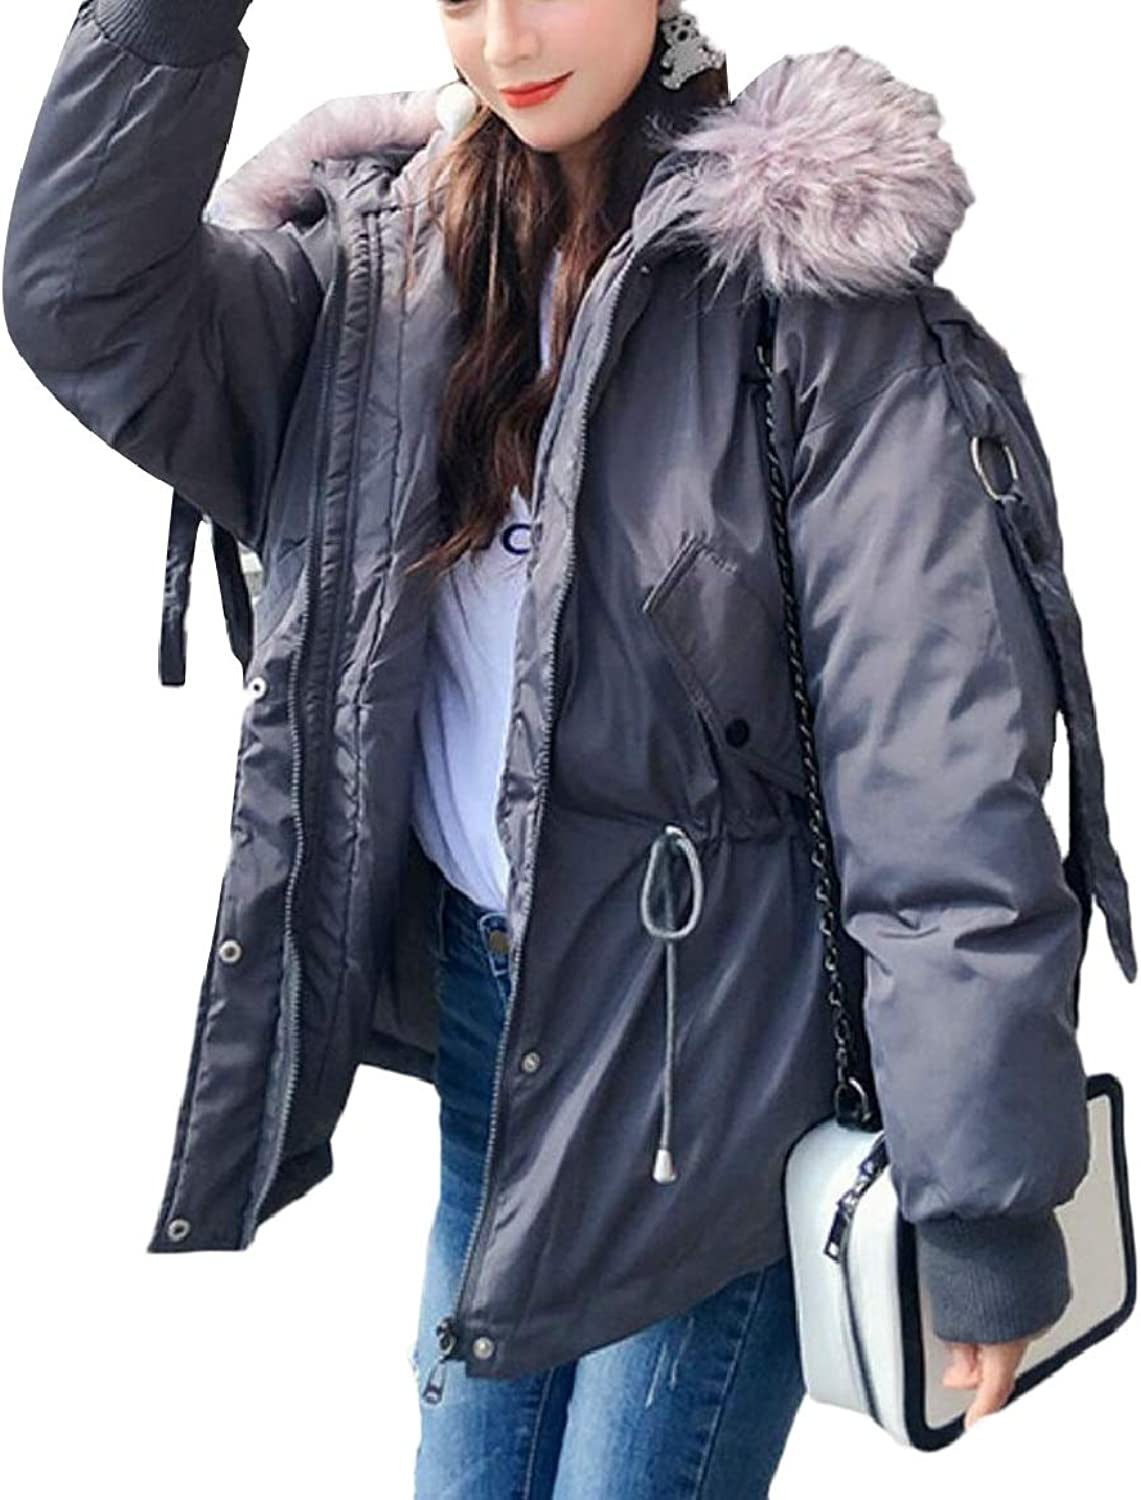 RGCA Women's FauxFur Collar Zipper Relaxed Fit Quilted Warm Down Jacket Coat